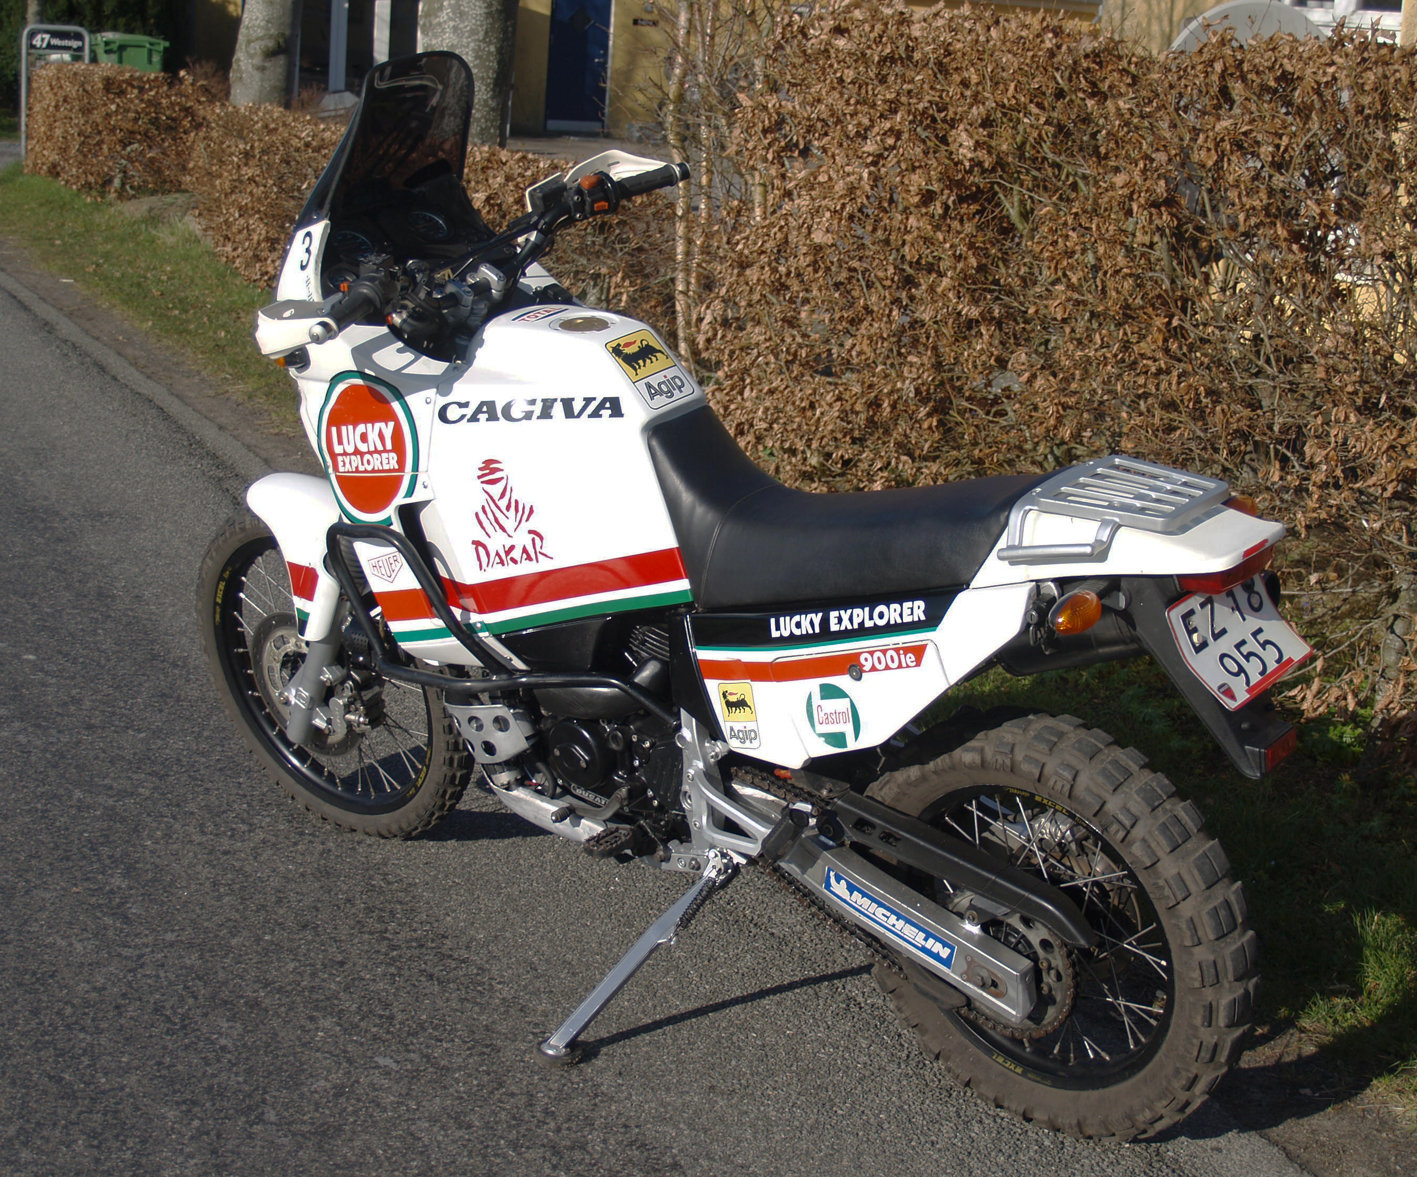 1990 CAGIVA ELEFANT LUCKY EXPLORER 900ie For Sale (picture 2 of 6)